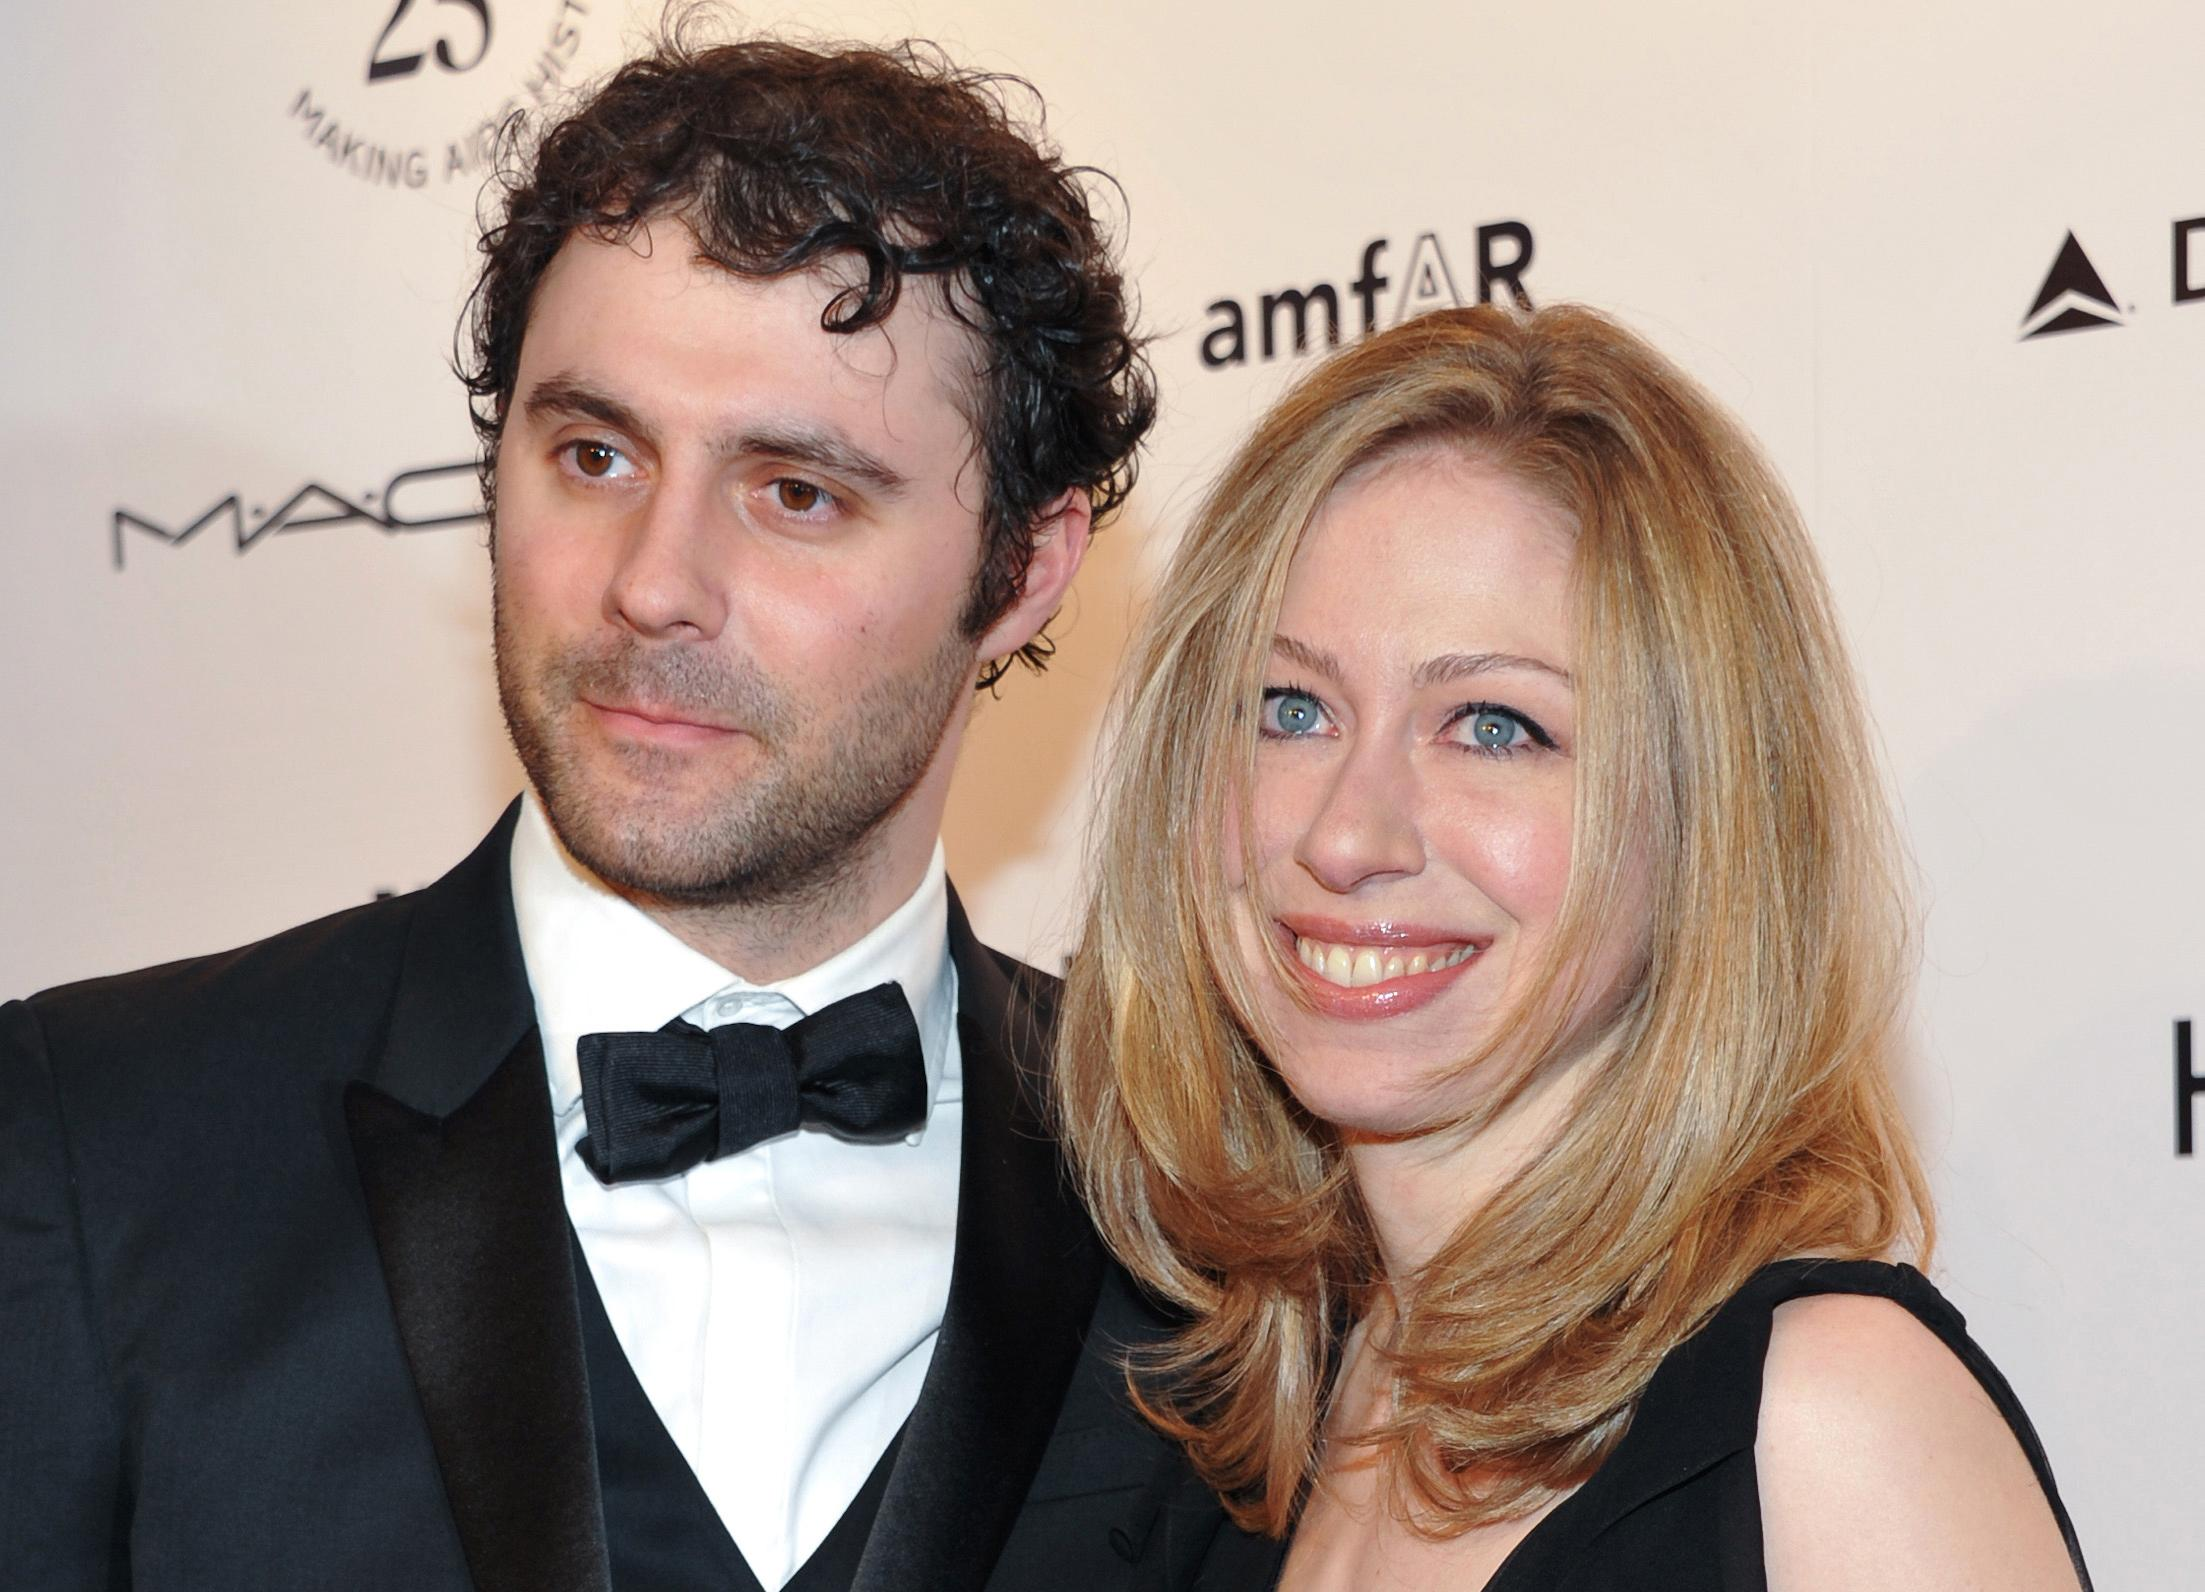 Chelsea linton weddings chelsealintonweddings com read more http - Chelsea Clinton S Husband Marc Mezvinsky Traded On Family Ties To Boost His Hedge Fund Wikileaks Washington Times